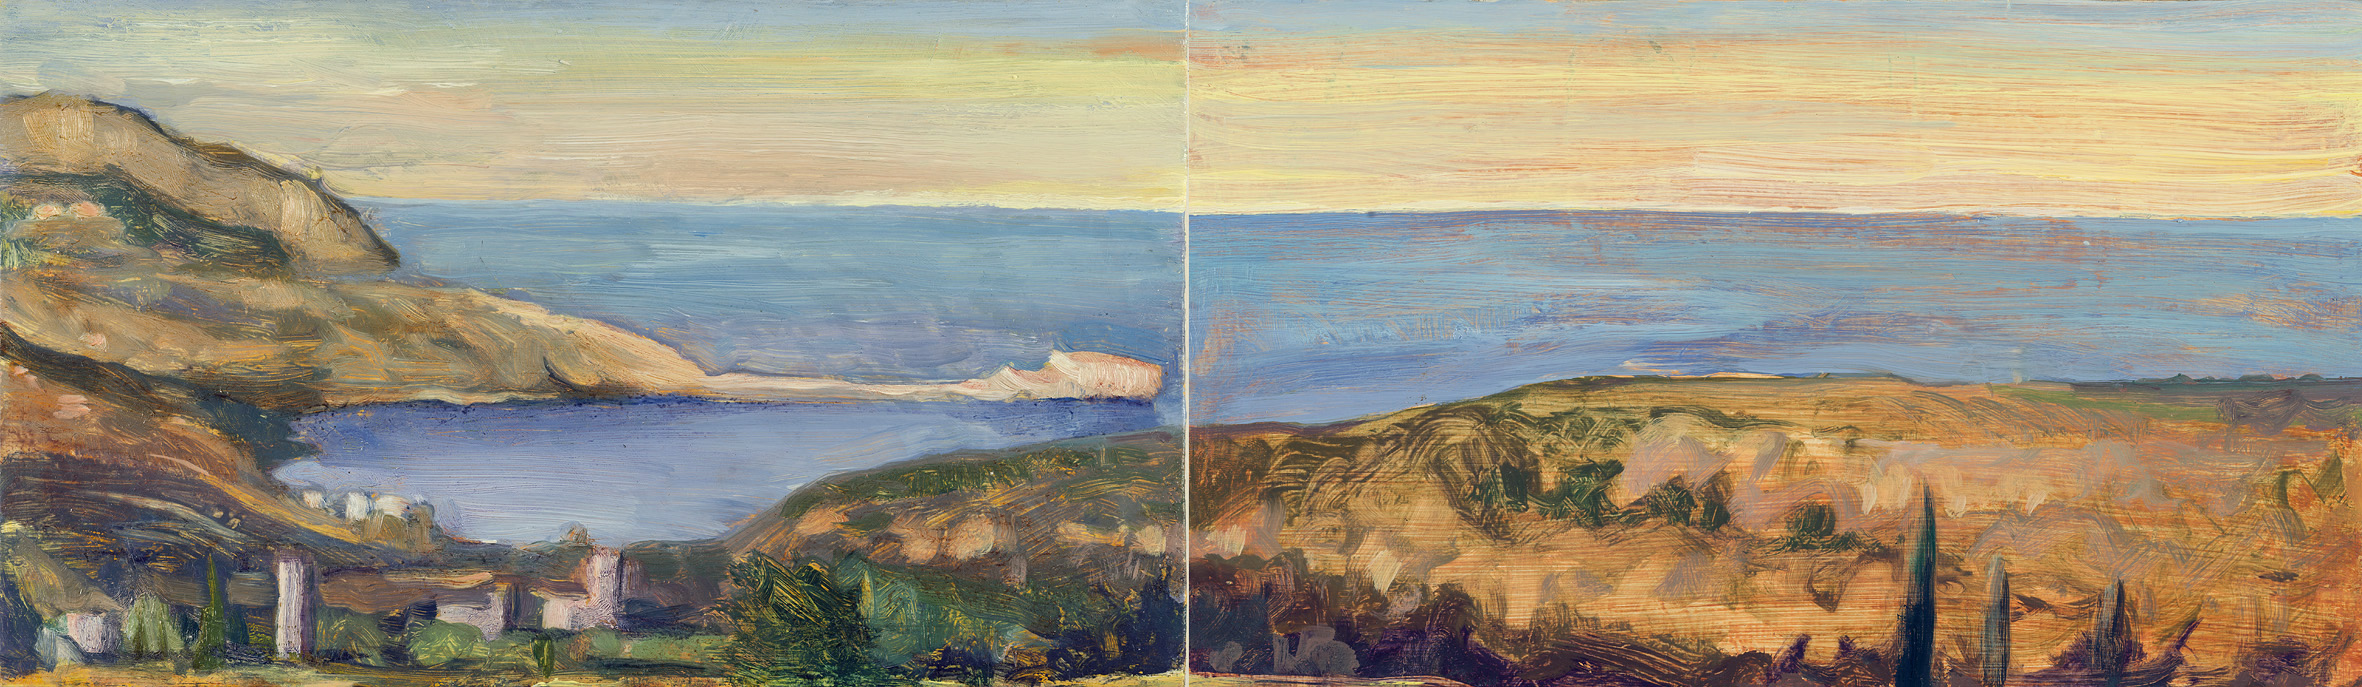 'Frying pan rock (Tigani) and the bay of Mezapos' oil on board 15.5 x 51cm